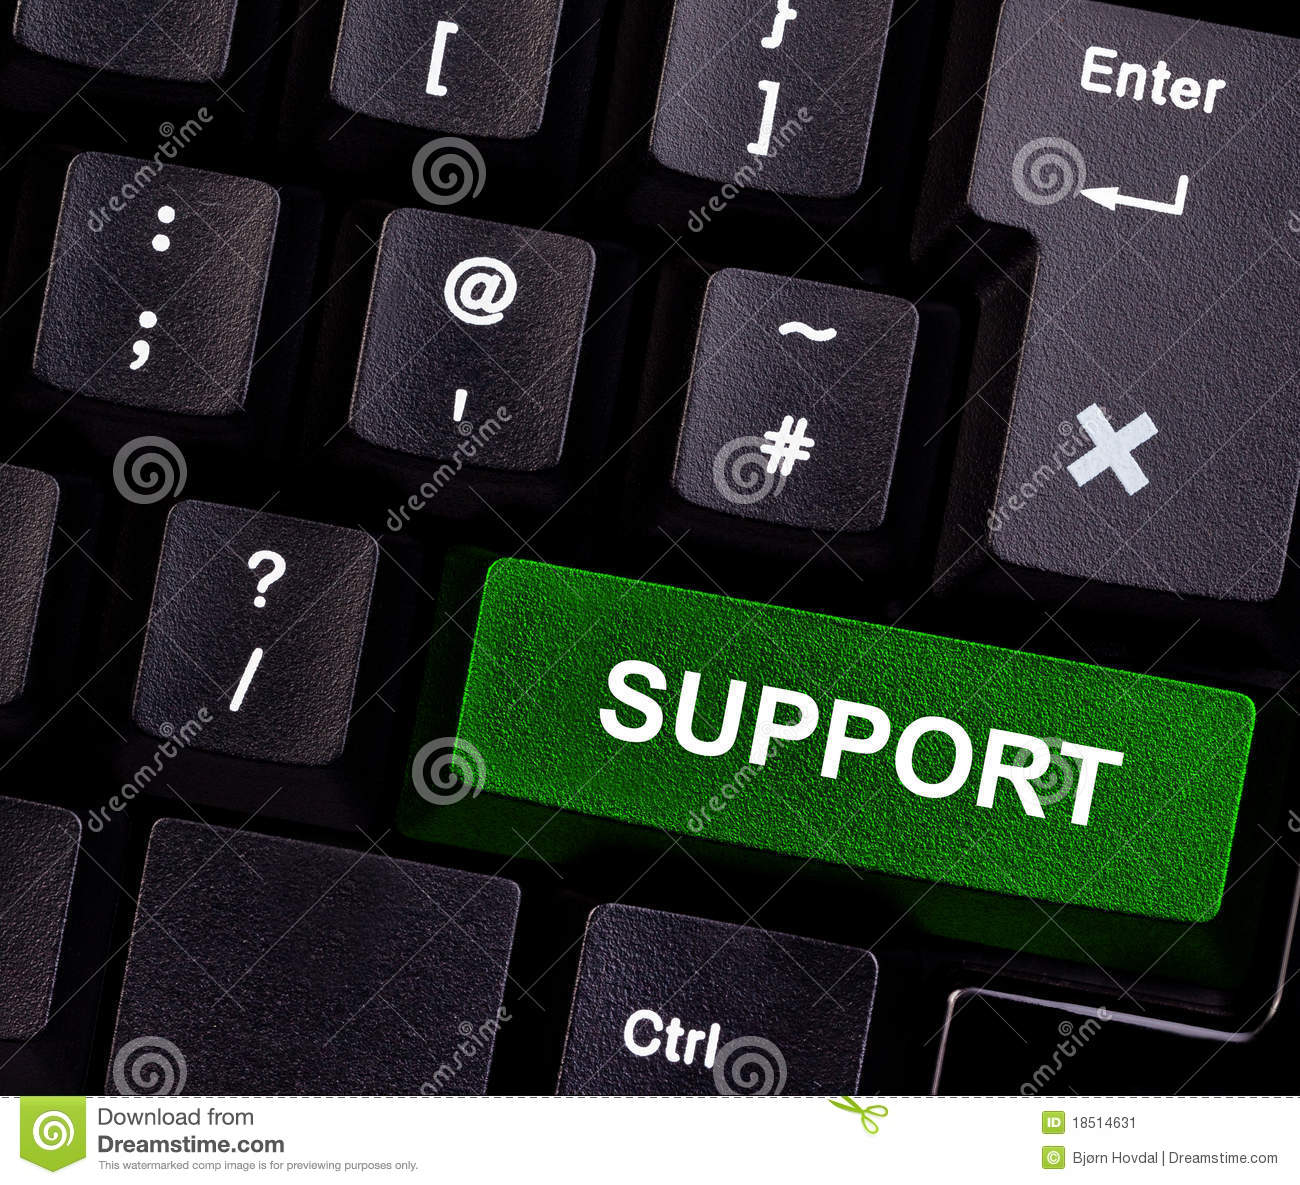 Support on keyboard